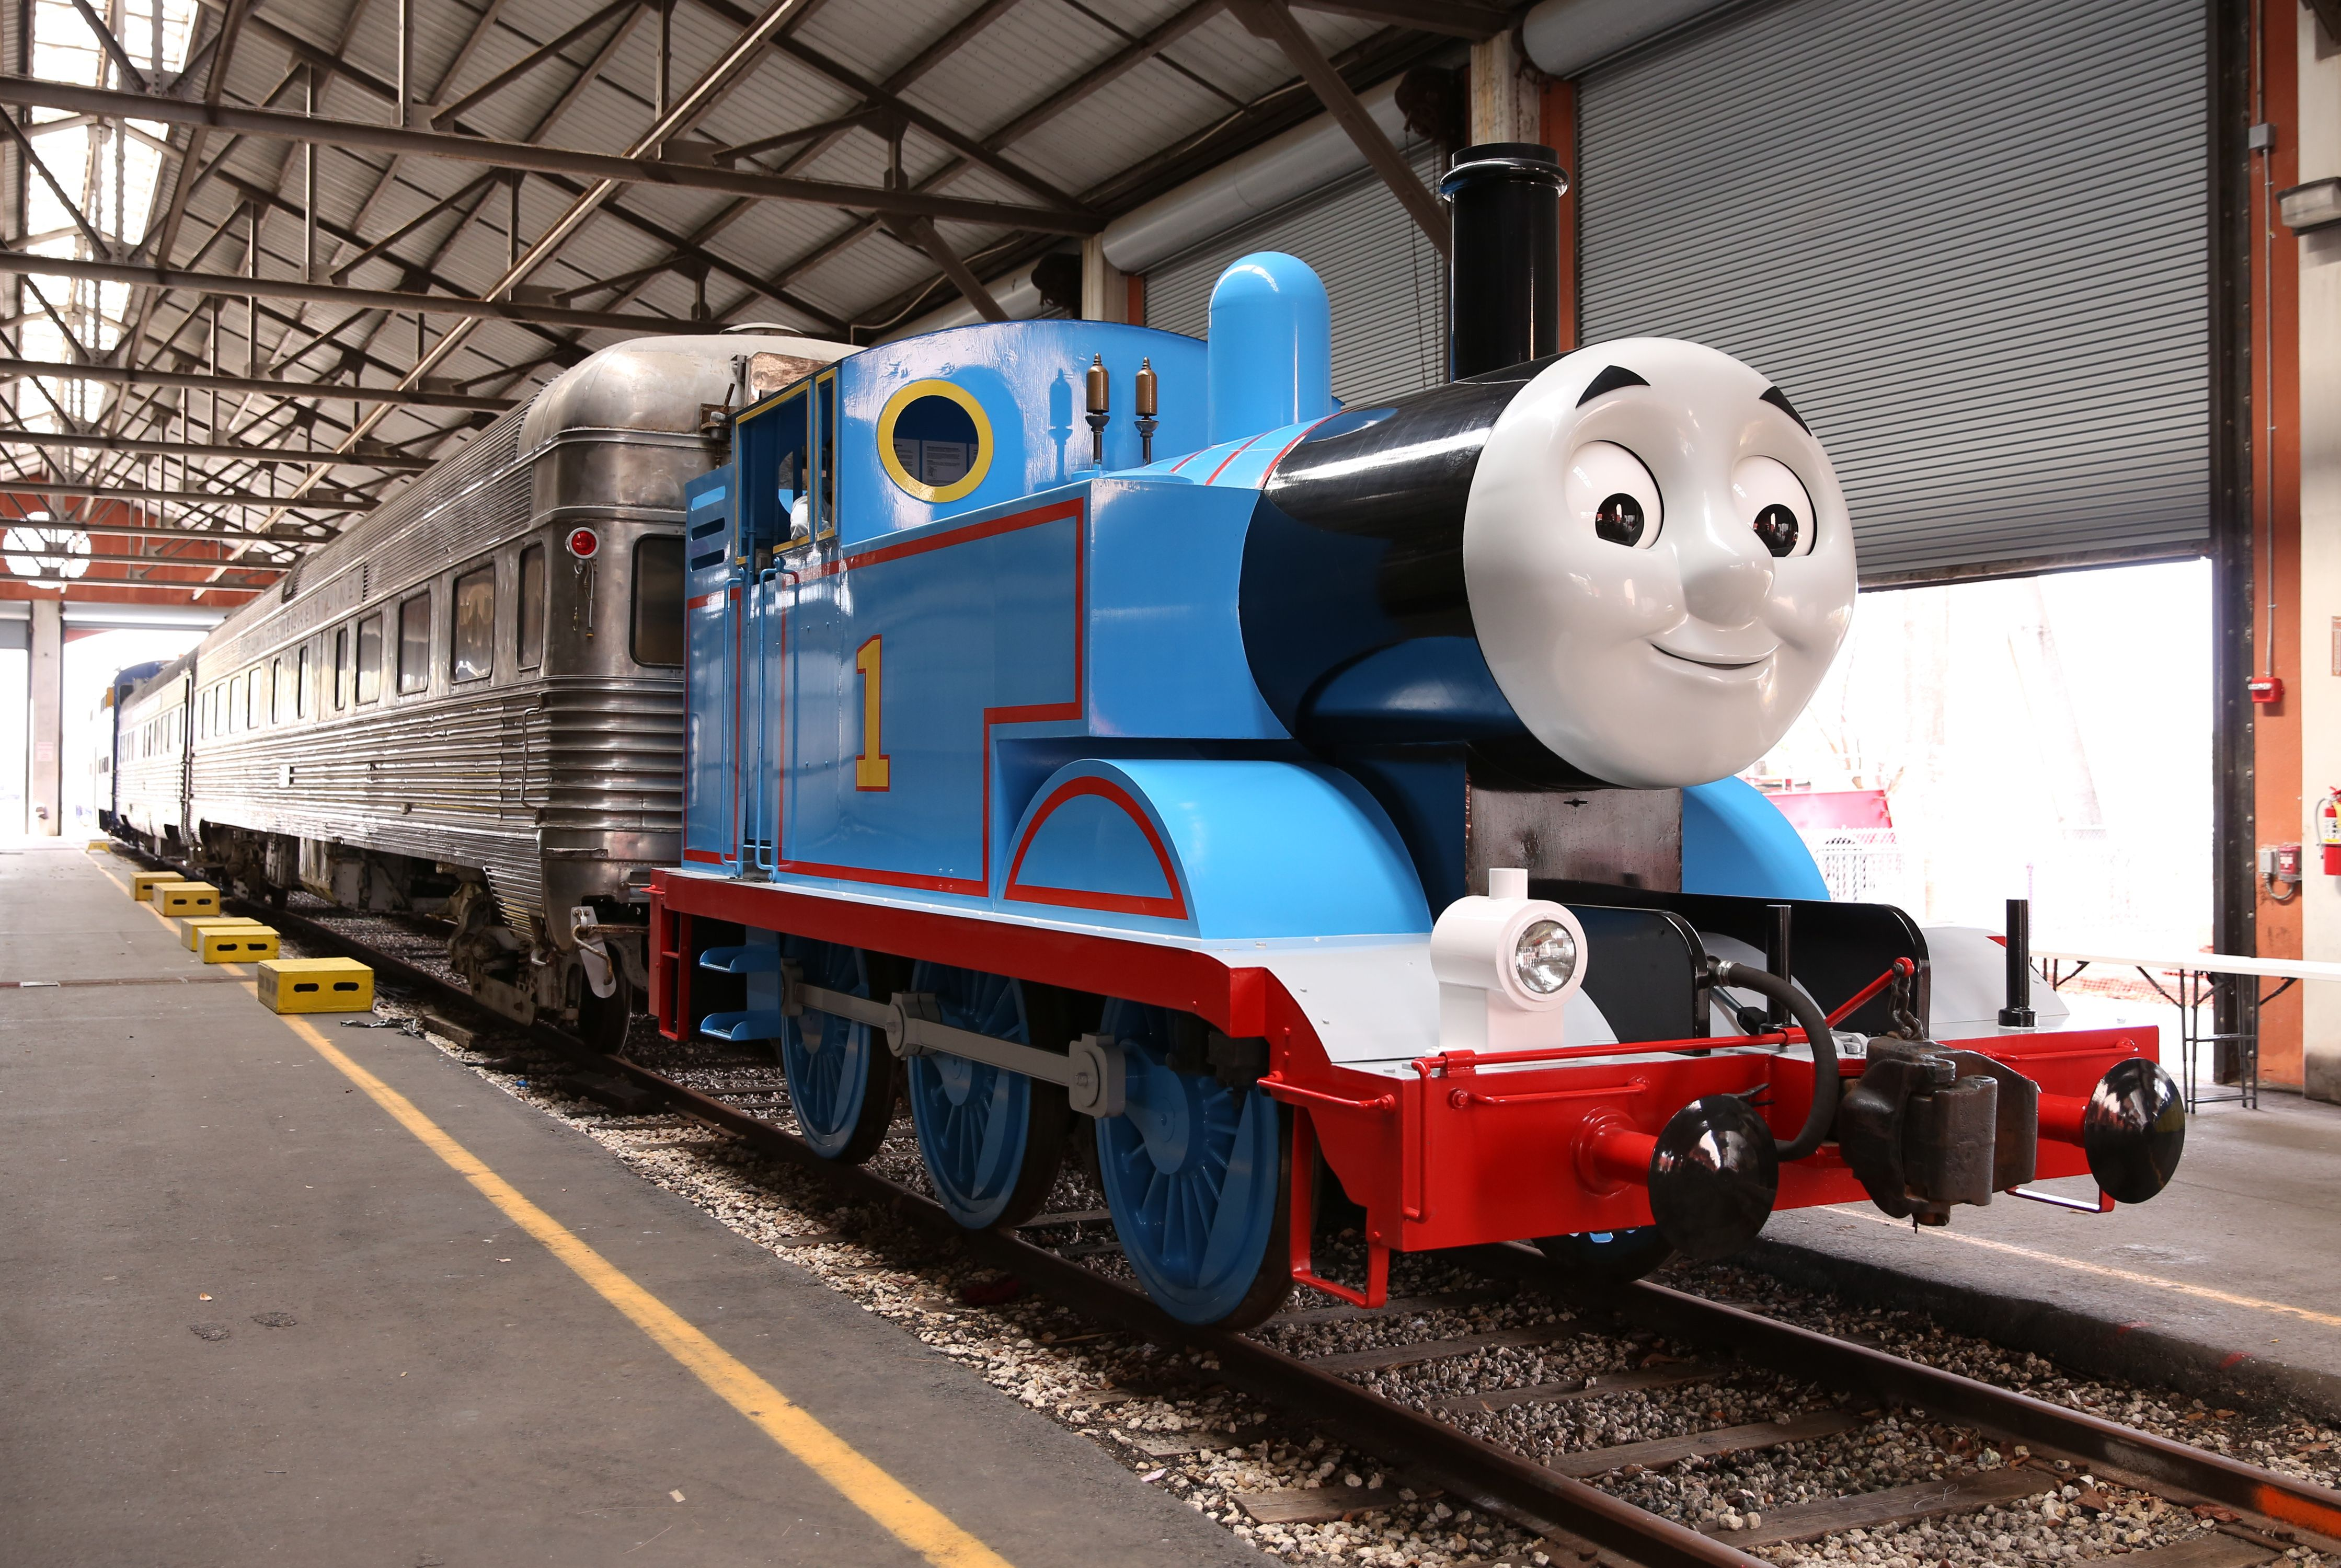 53 Train Rides for Kids - Best Train Rides for Families in